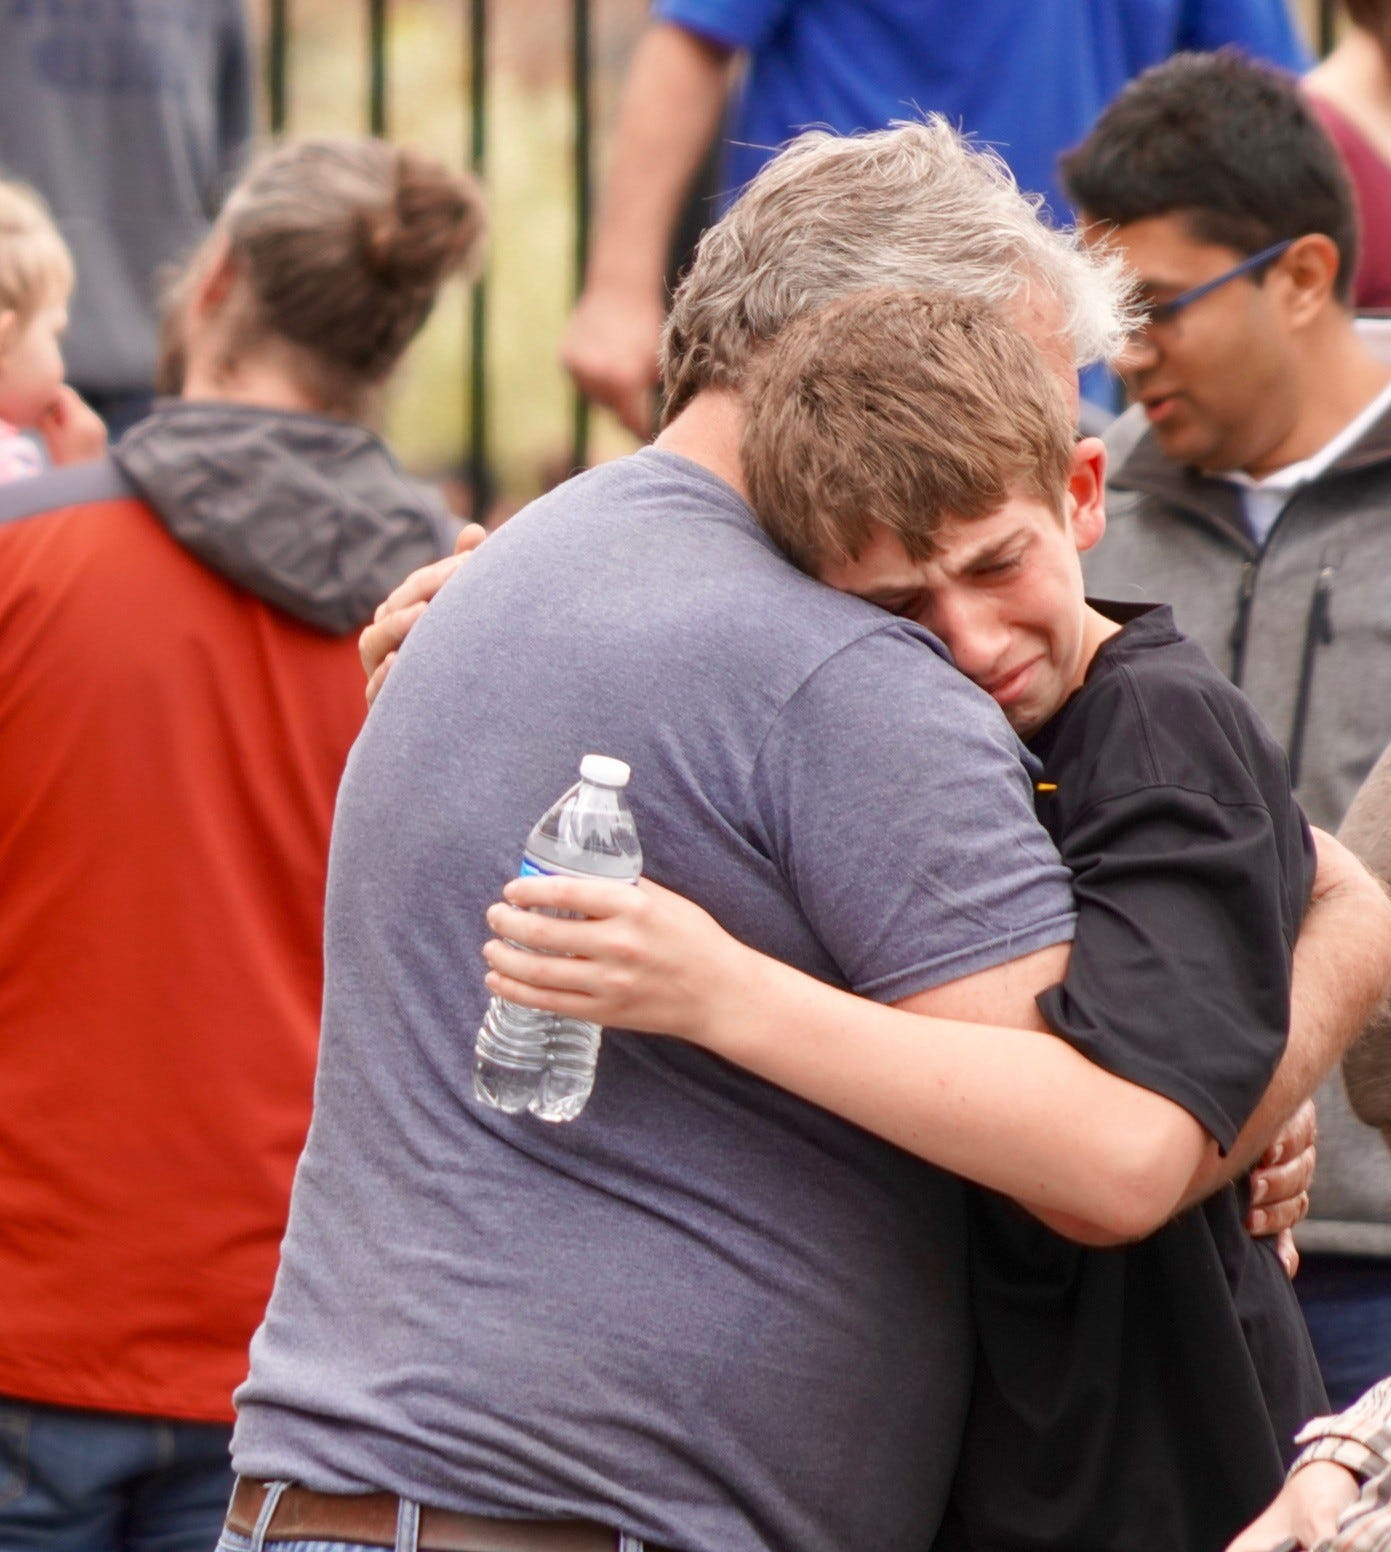 Denver Shooting Suspect Name: Suspect ID'd In Colorado School Shooting That Leaves 1